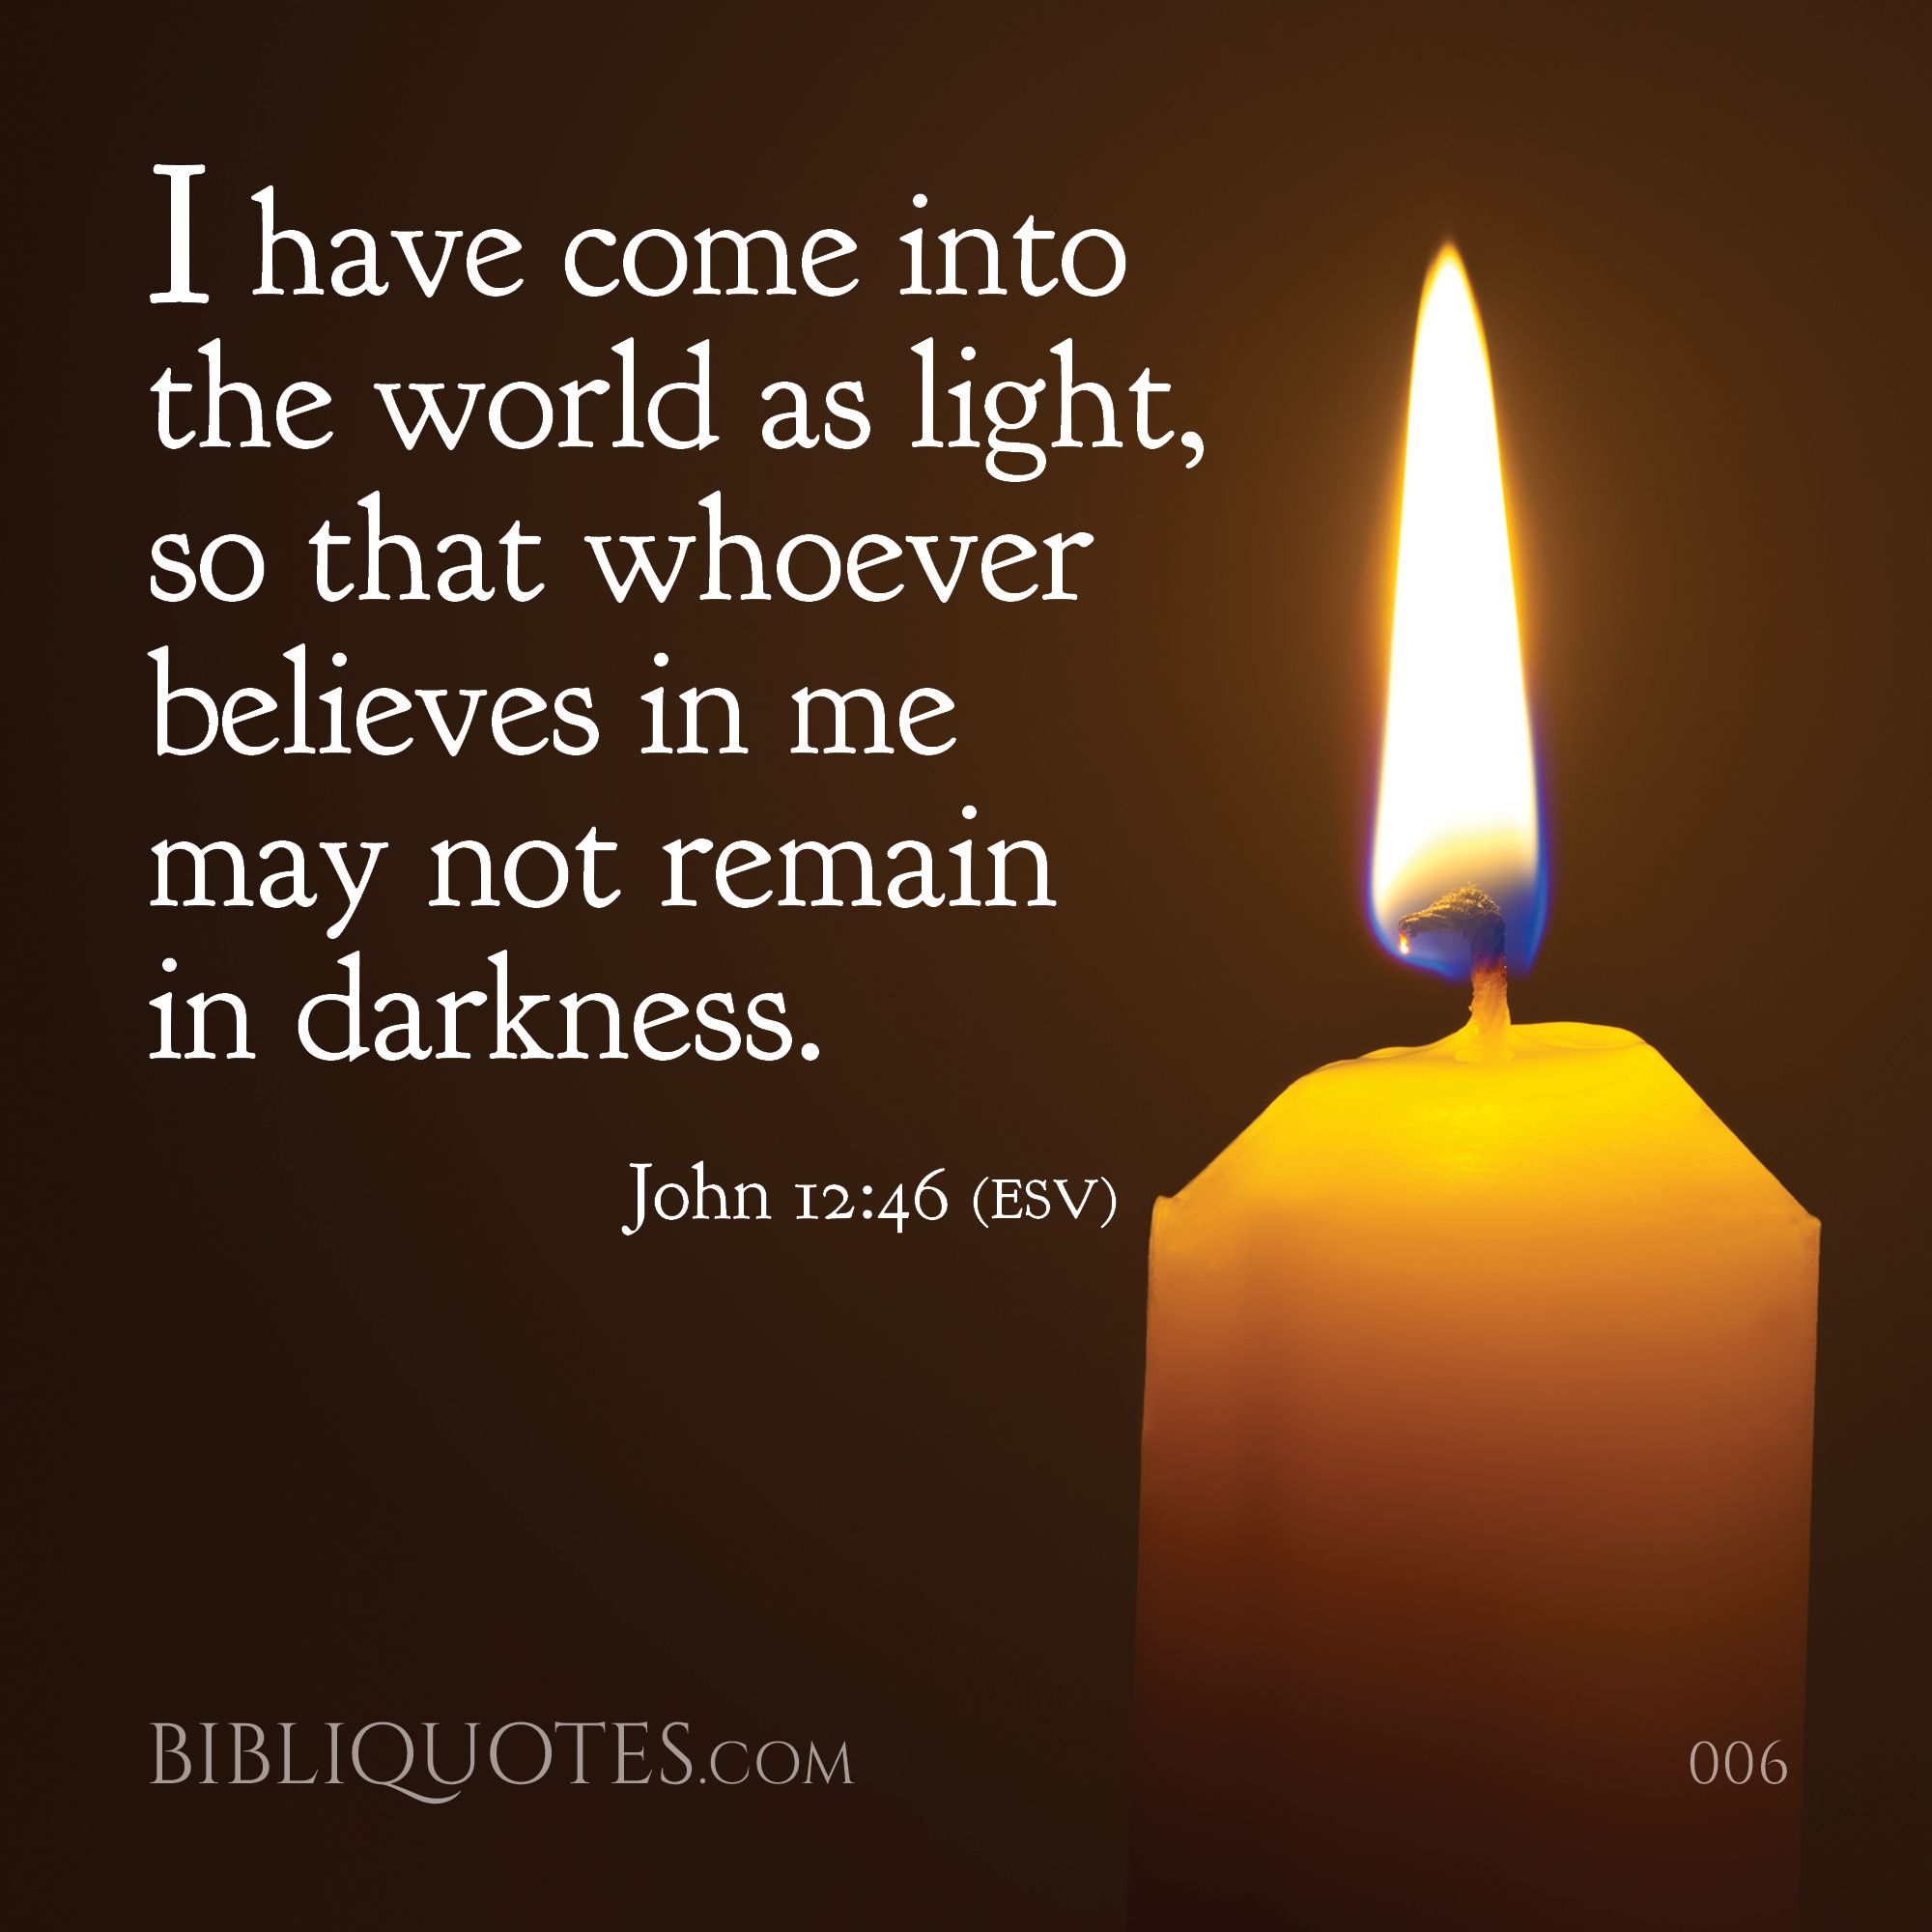 Inspirational Biblical Quotes About Life Inspirational Bible Quotes And Graphics  John 1246  I Have Come